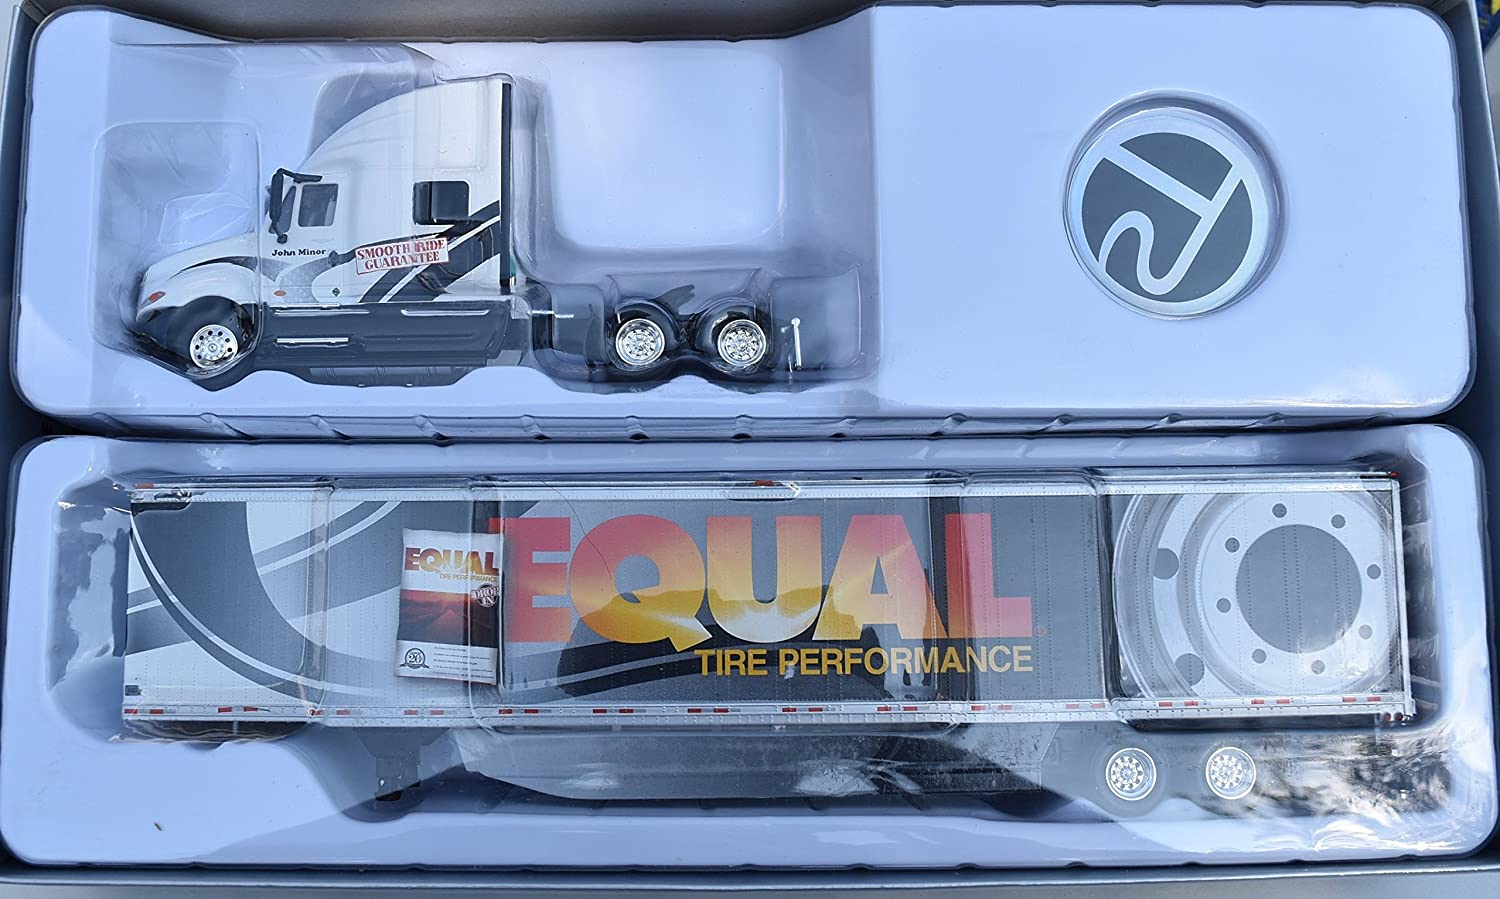 全国総量無料で Tonkin ProStar Precision Series 1 : 53 Scale with ProStar Scale with 53 Dry Van Trailer EqualタイヤパフォーマンスダイキャストCollectible B07FZTY2C9, ソファ専門店 モデュロール:f66cf442 --- diceanalytics.pk